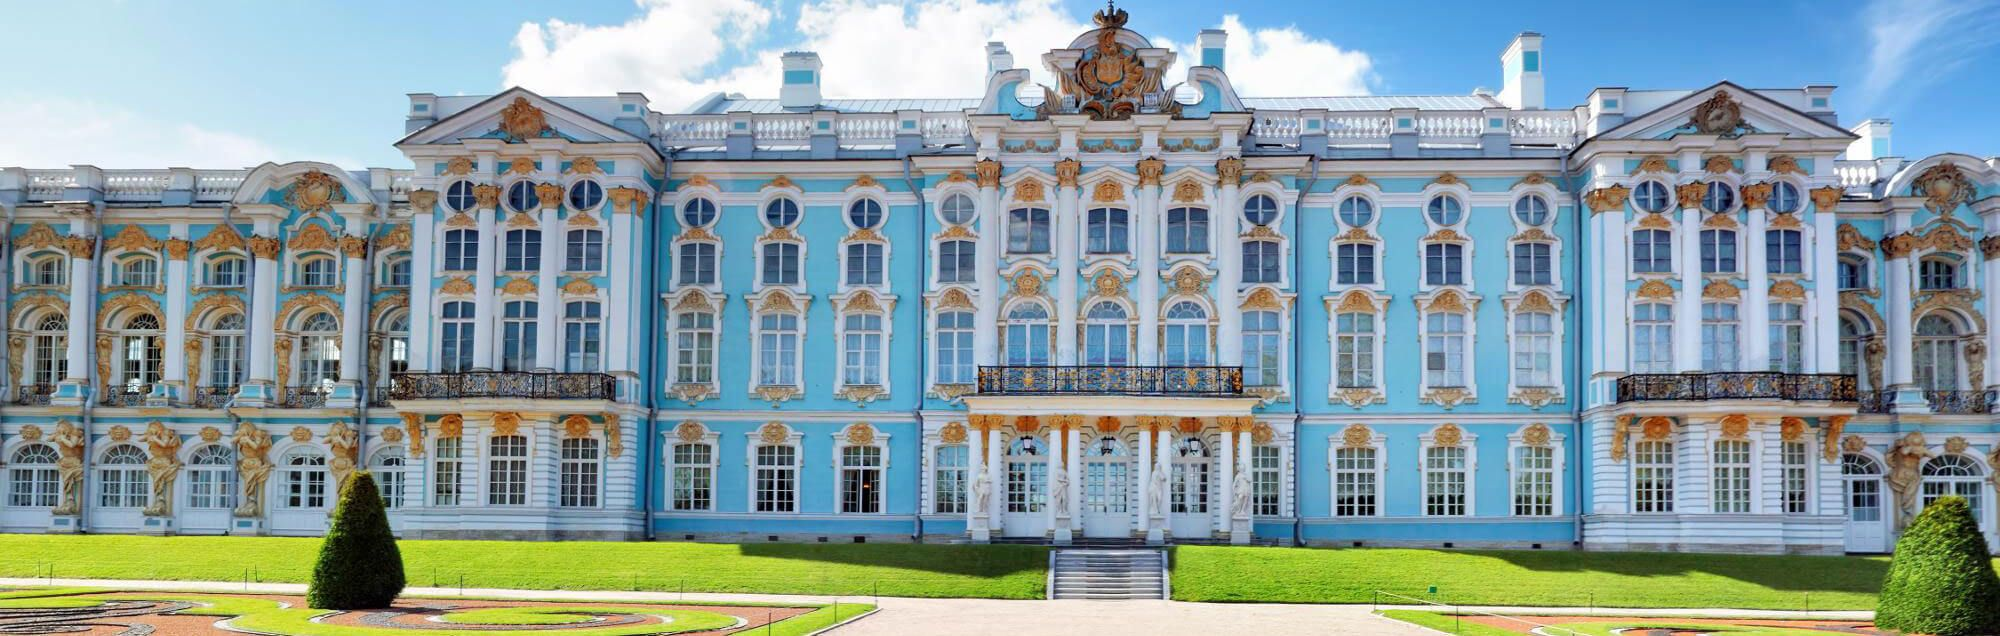 Keen to enjoy a personalized tour in St Petersburg? We are confident that your search for the best tour operator would surely end with us. We at Dancing Bear Tours make sure to integrate all your specifications and present before all that you have on your wish-list. So, without any further ado, contact us soon.